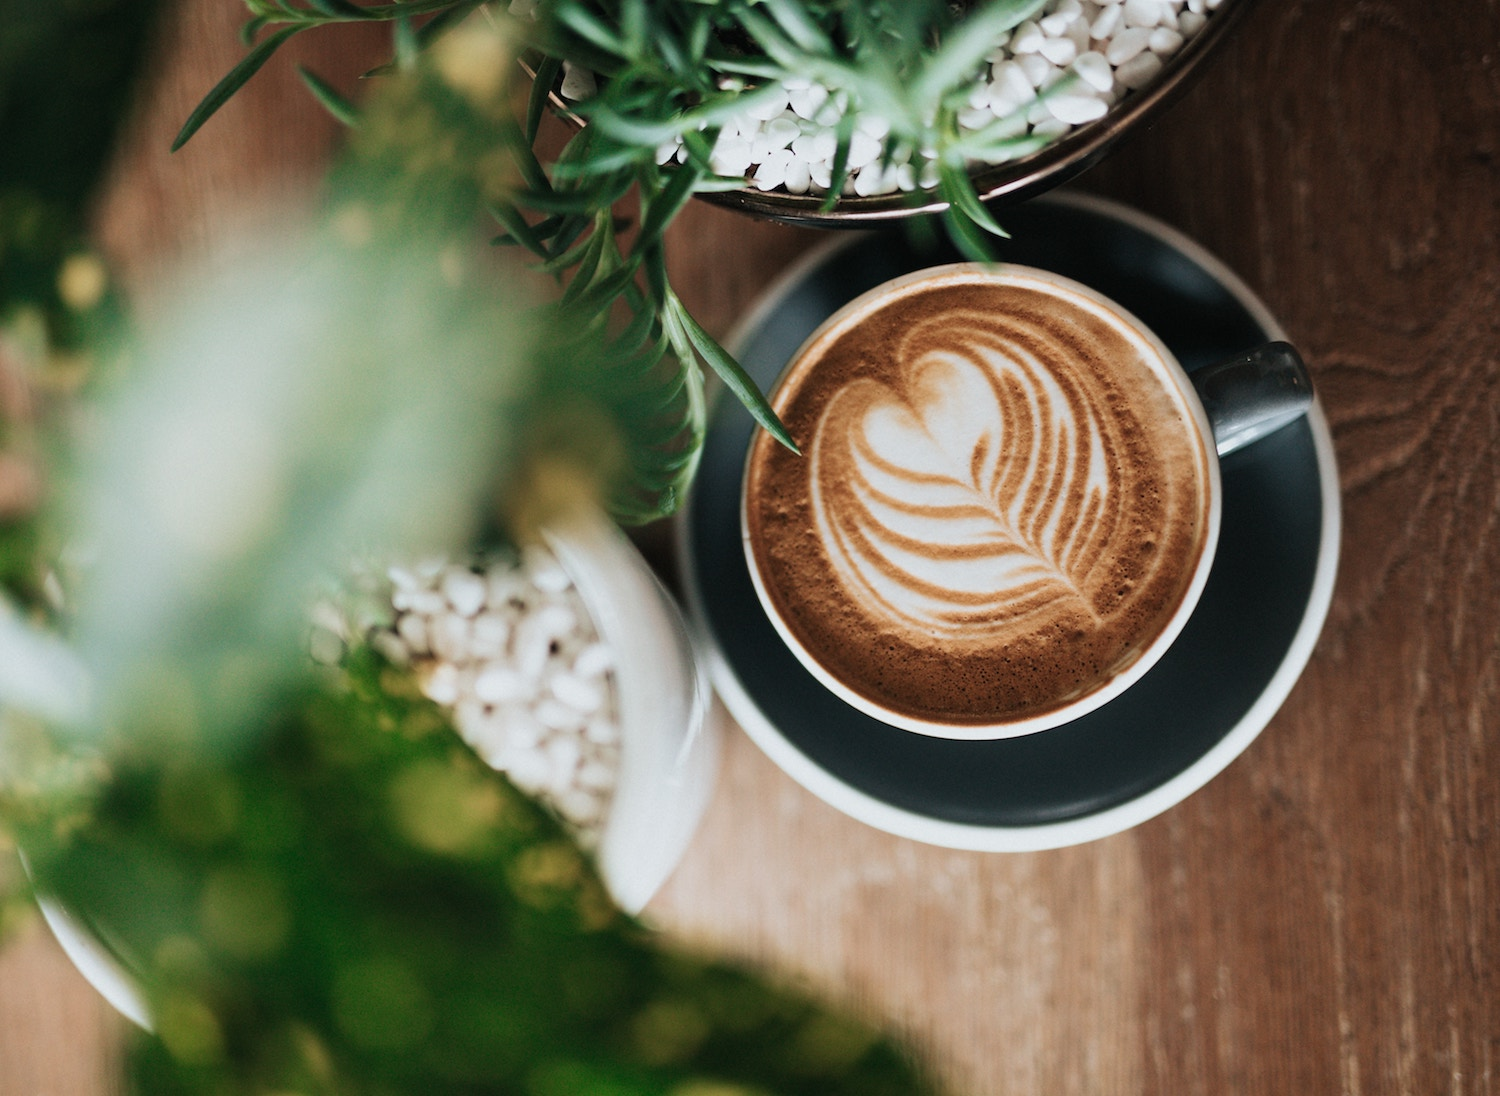 order coffee for here to reduce plastic use while traveling